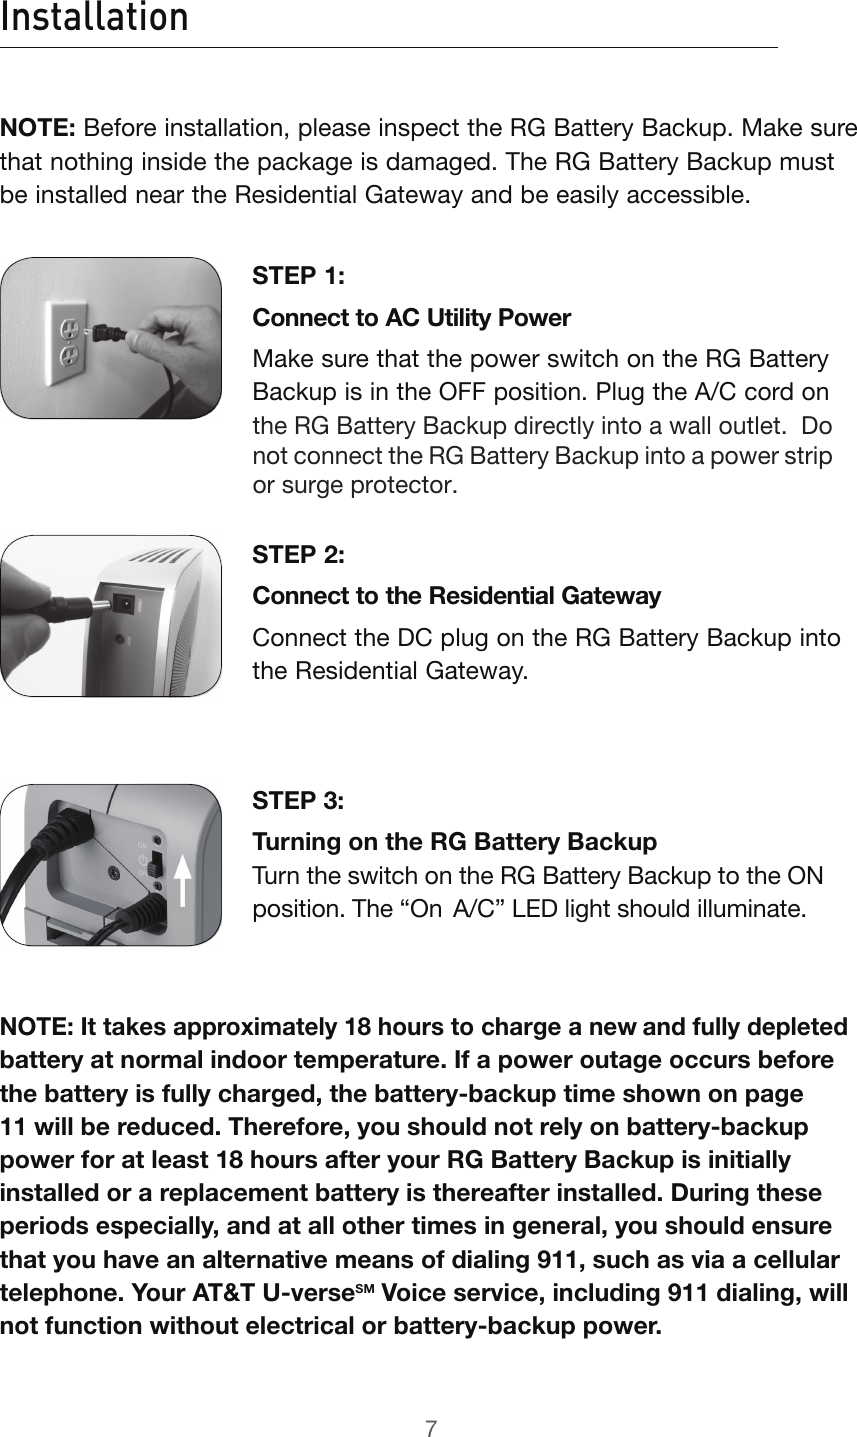 Belkin bu3dc001 12v users manual usermanualwallmountingbu3dc001 page 8 of 12 belkin belkin bu3dc001 12v users manual publicscrutiny